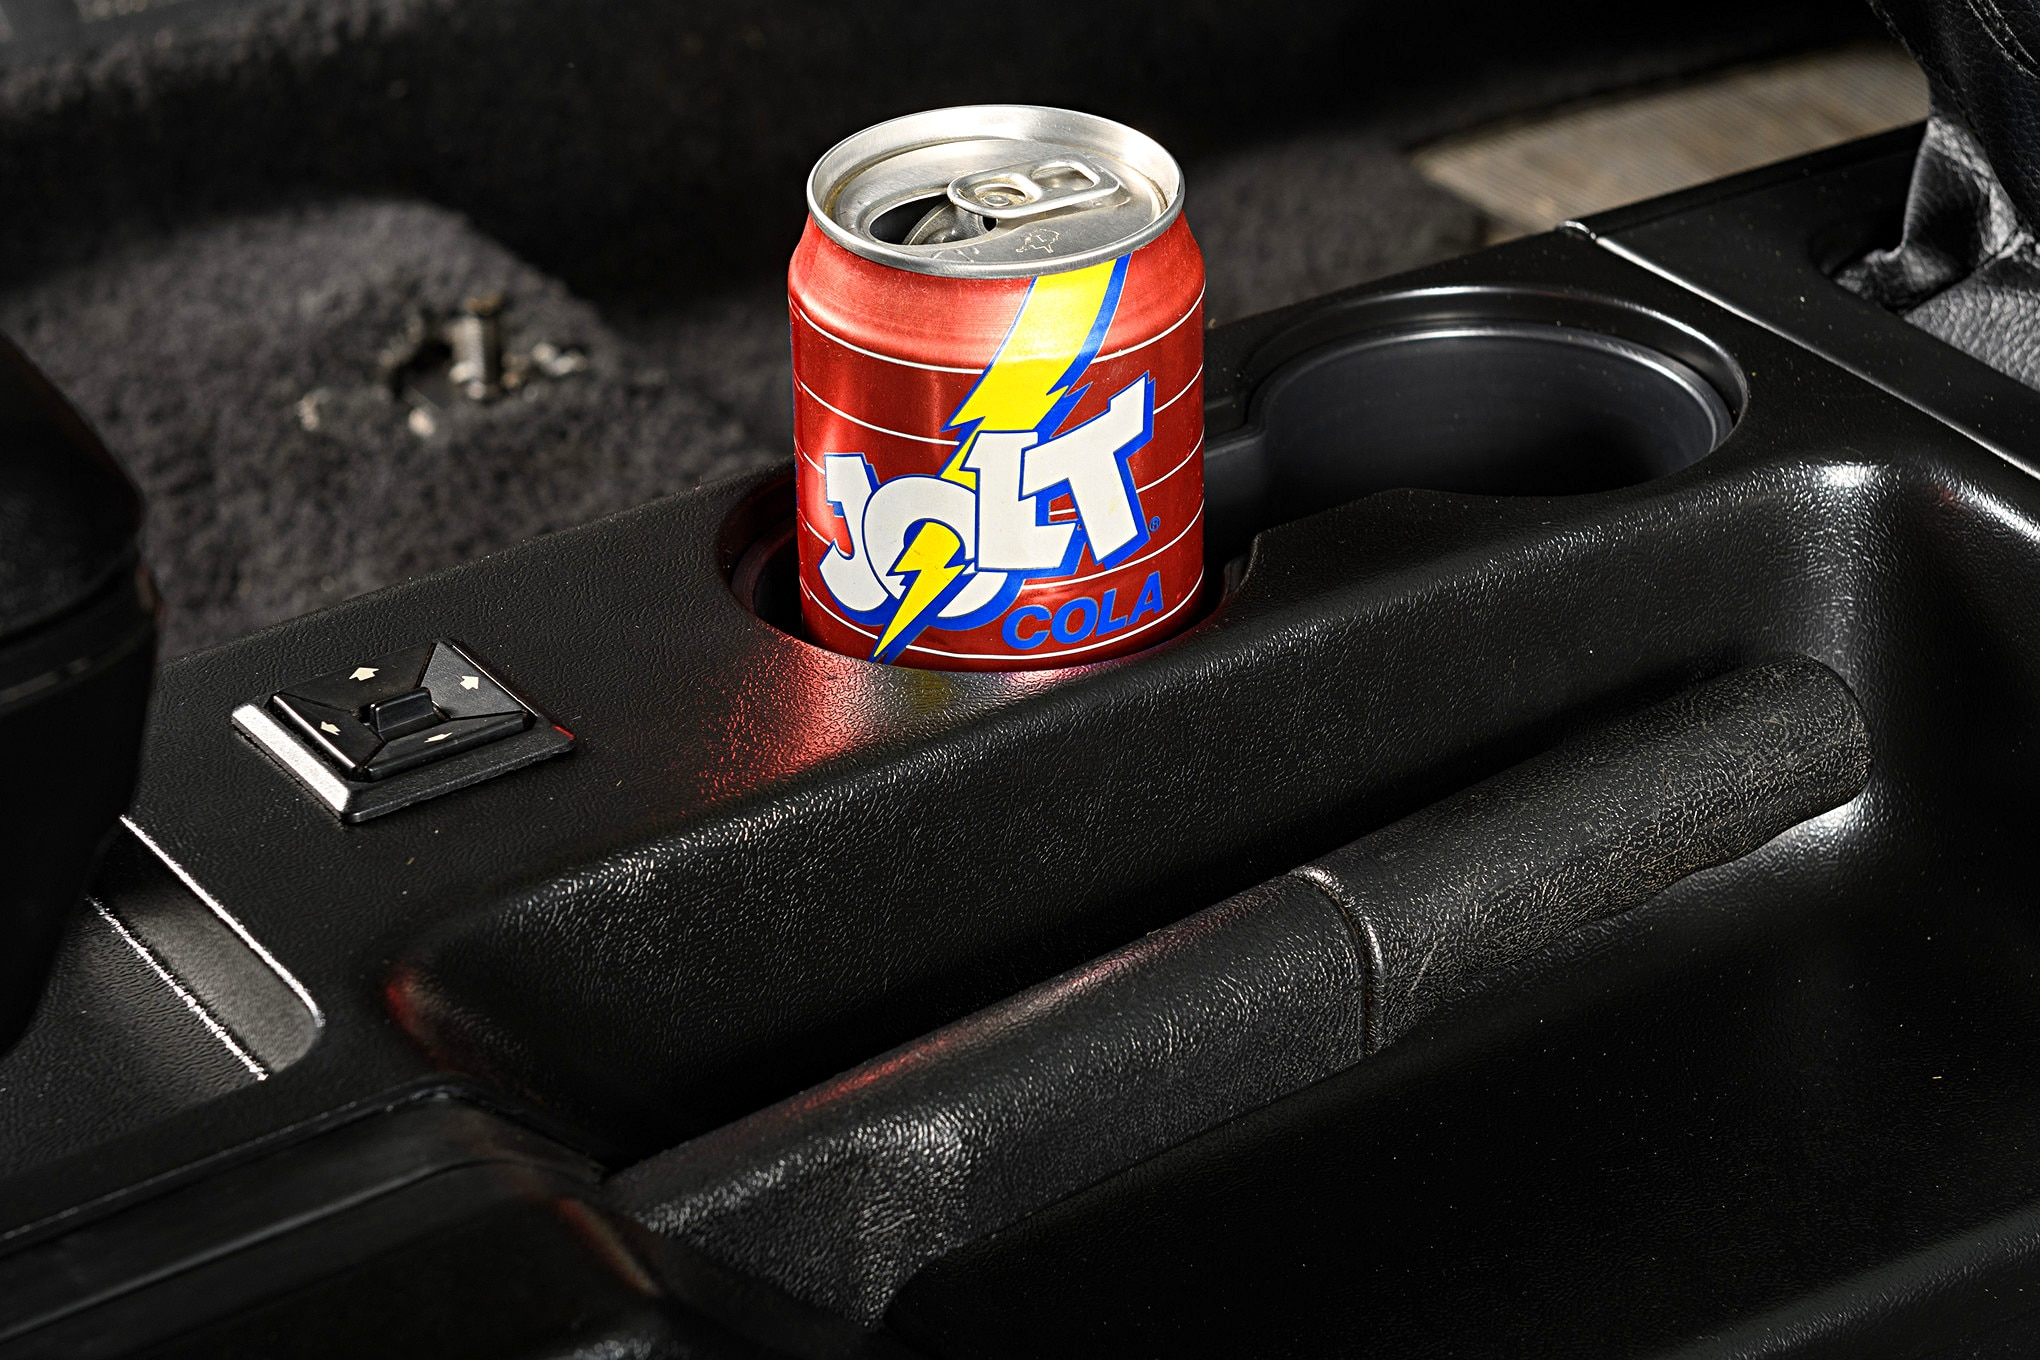 028 Mustang Center Console Lmr Cup Holder